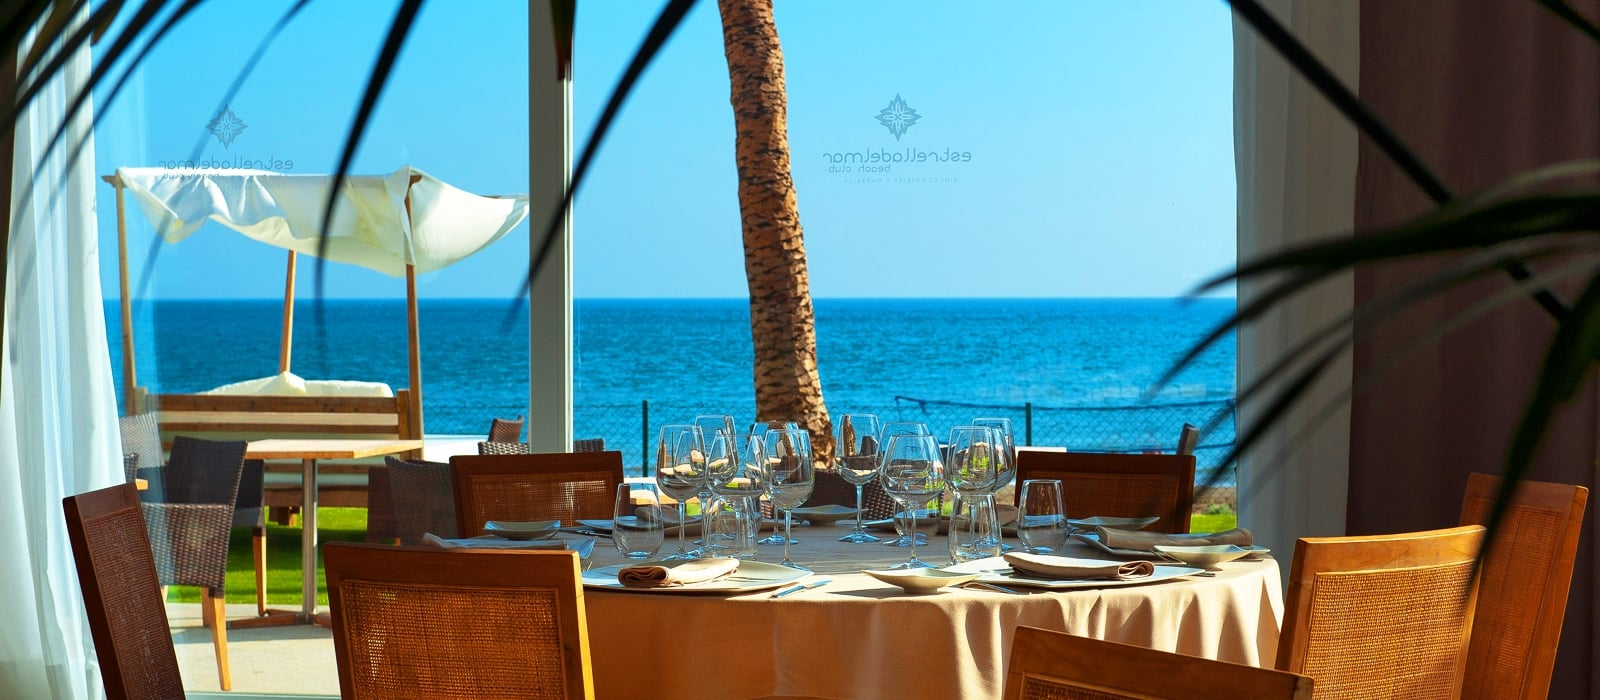 Beach Club Hotel Vincci Estrella de Mar - Restaurant Beach Club Day